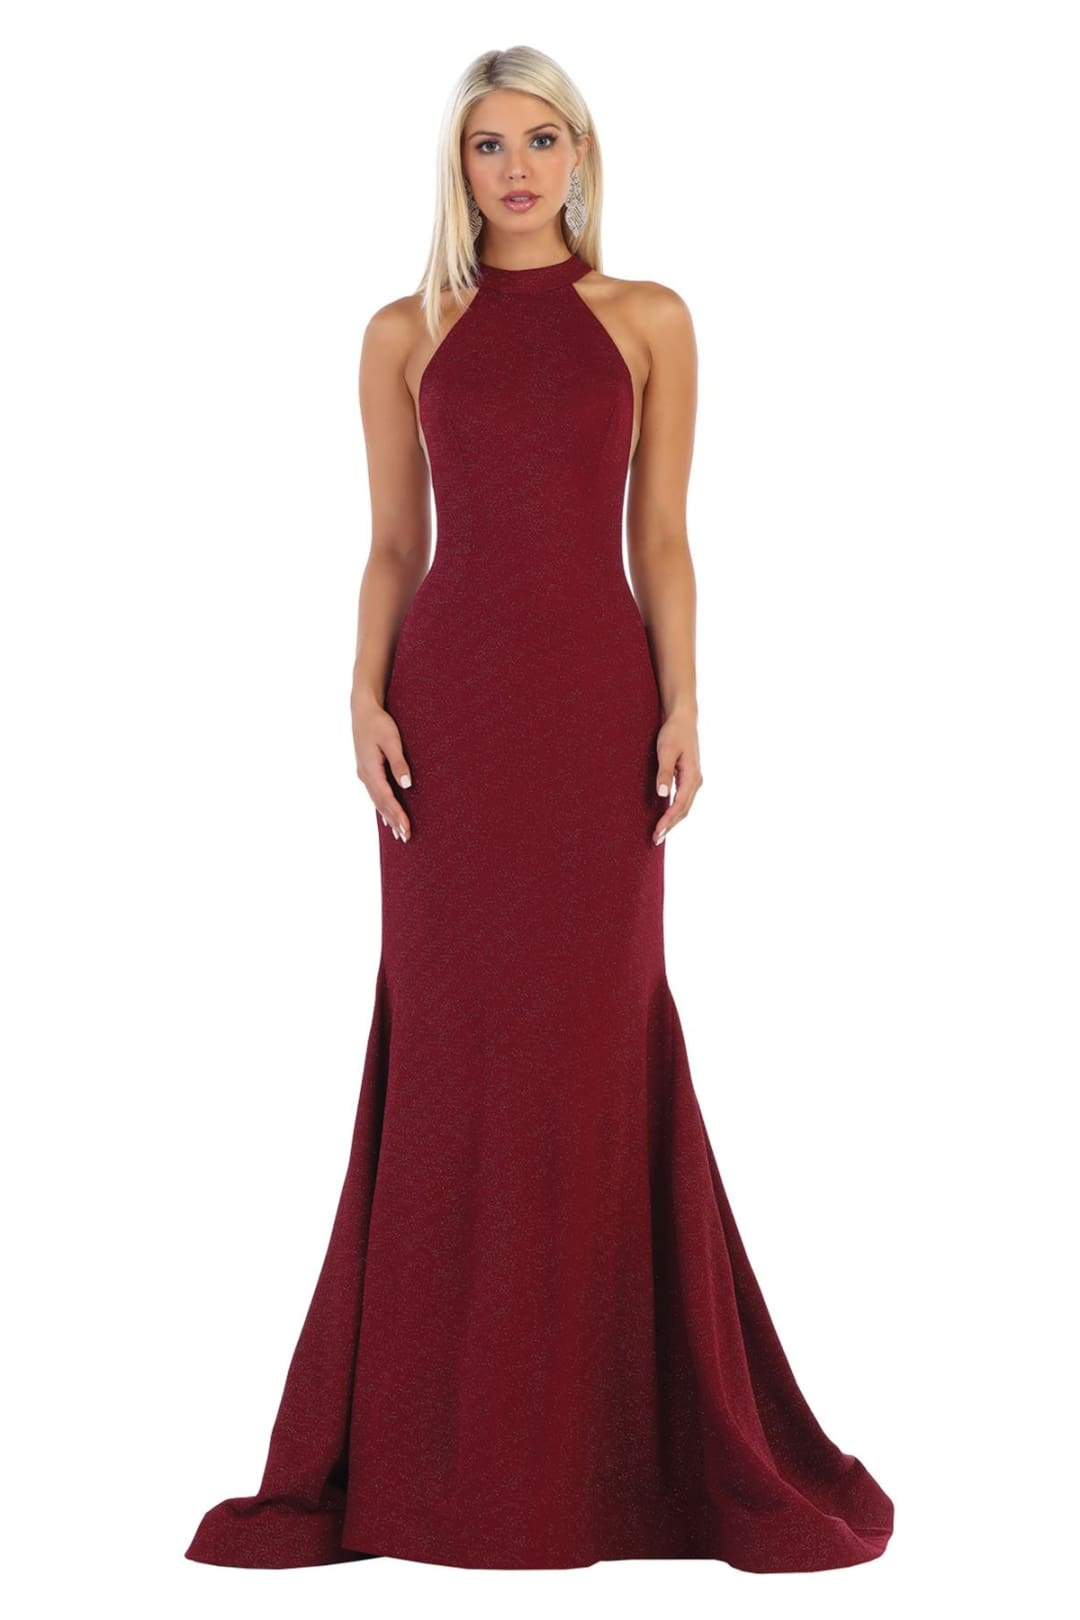 Sleeveless Modern Prom Gown - Burgundy / 2